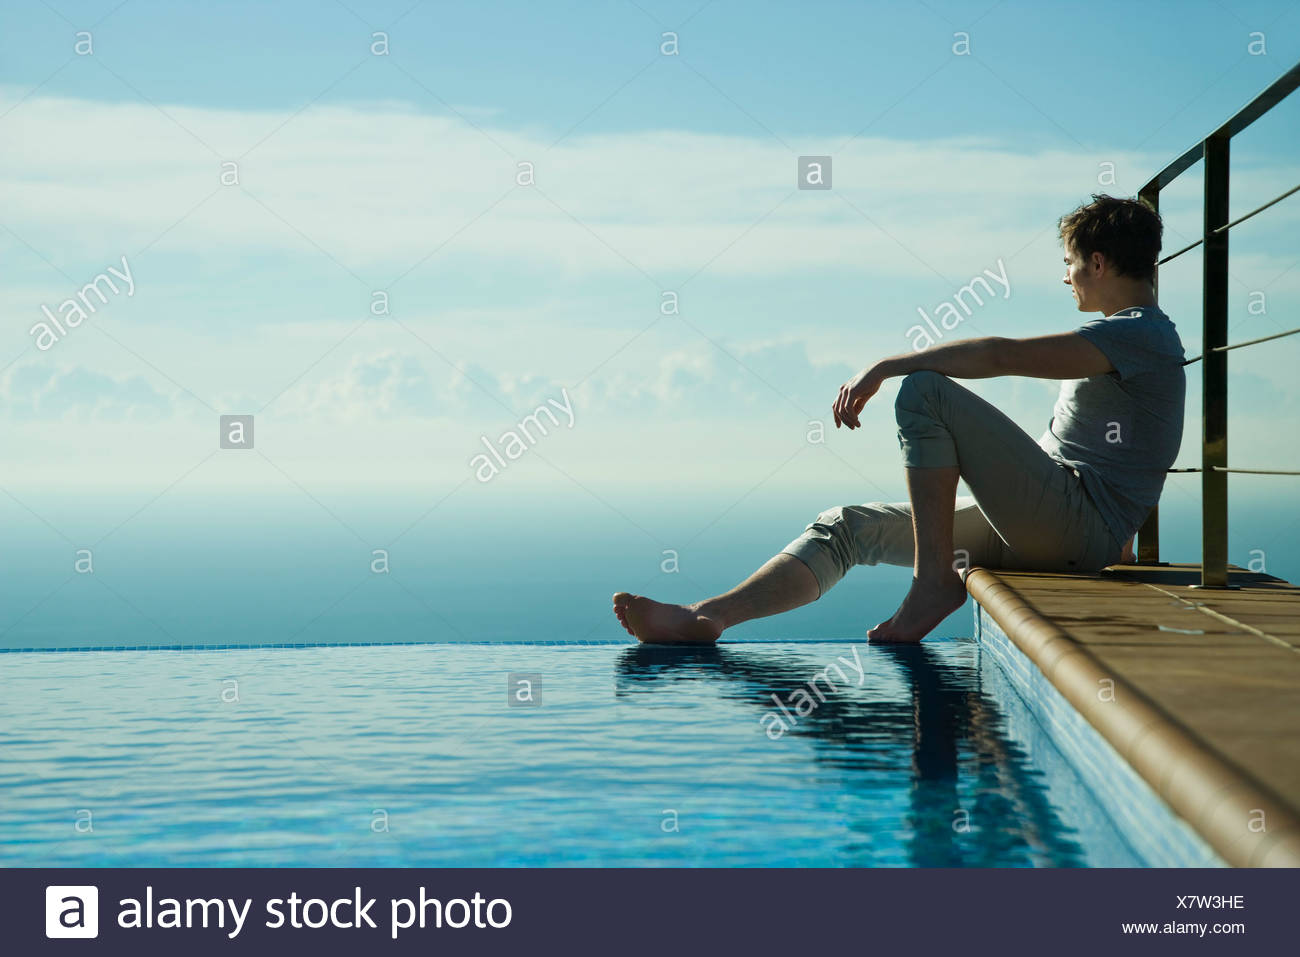 Man sitting on edge of infinity pool, looking at view - Stock Image